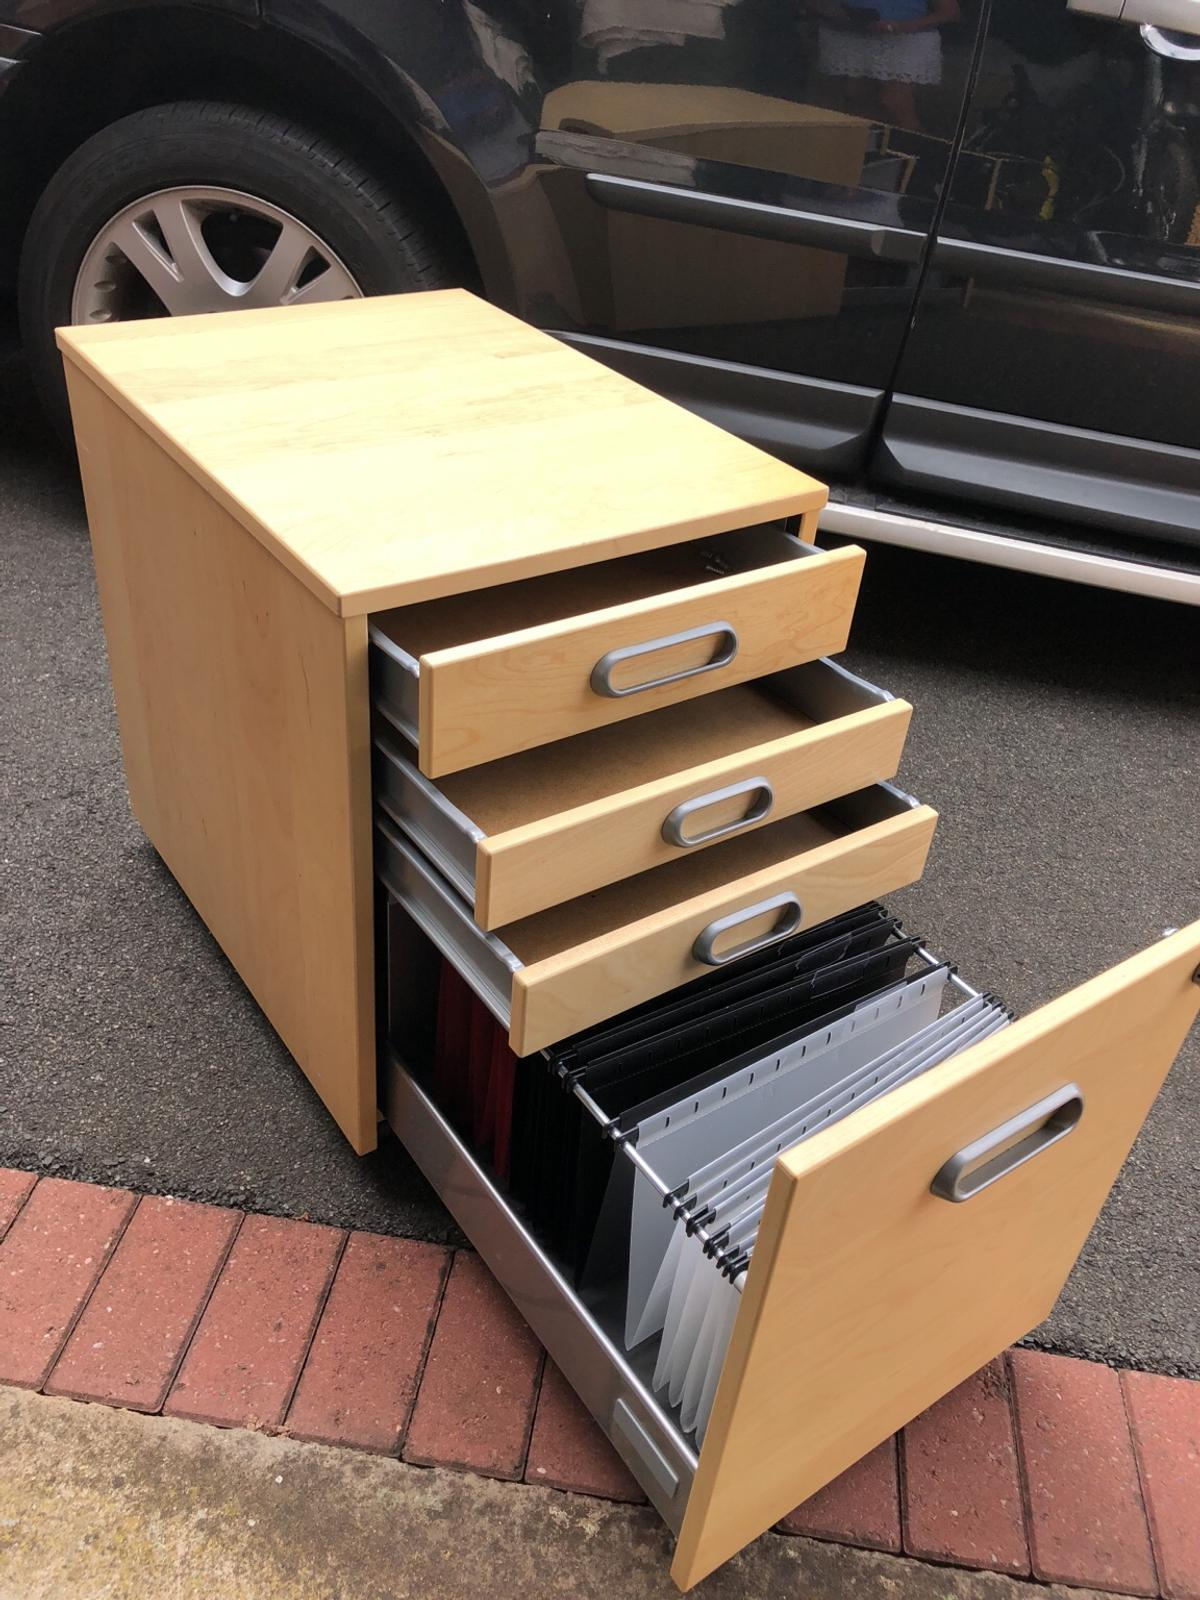 Marvelous Ikea Galant Birch Filing Cabinet In Dy6 Dudley For 40 00 Download Free Architecture Designs Xaembritishbridgeorg